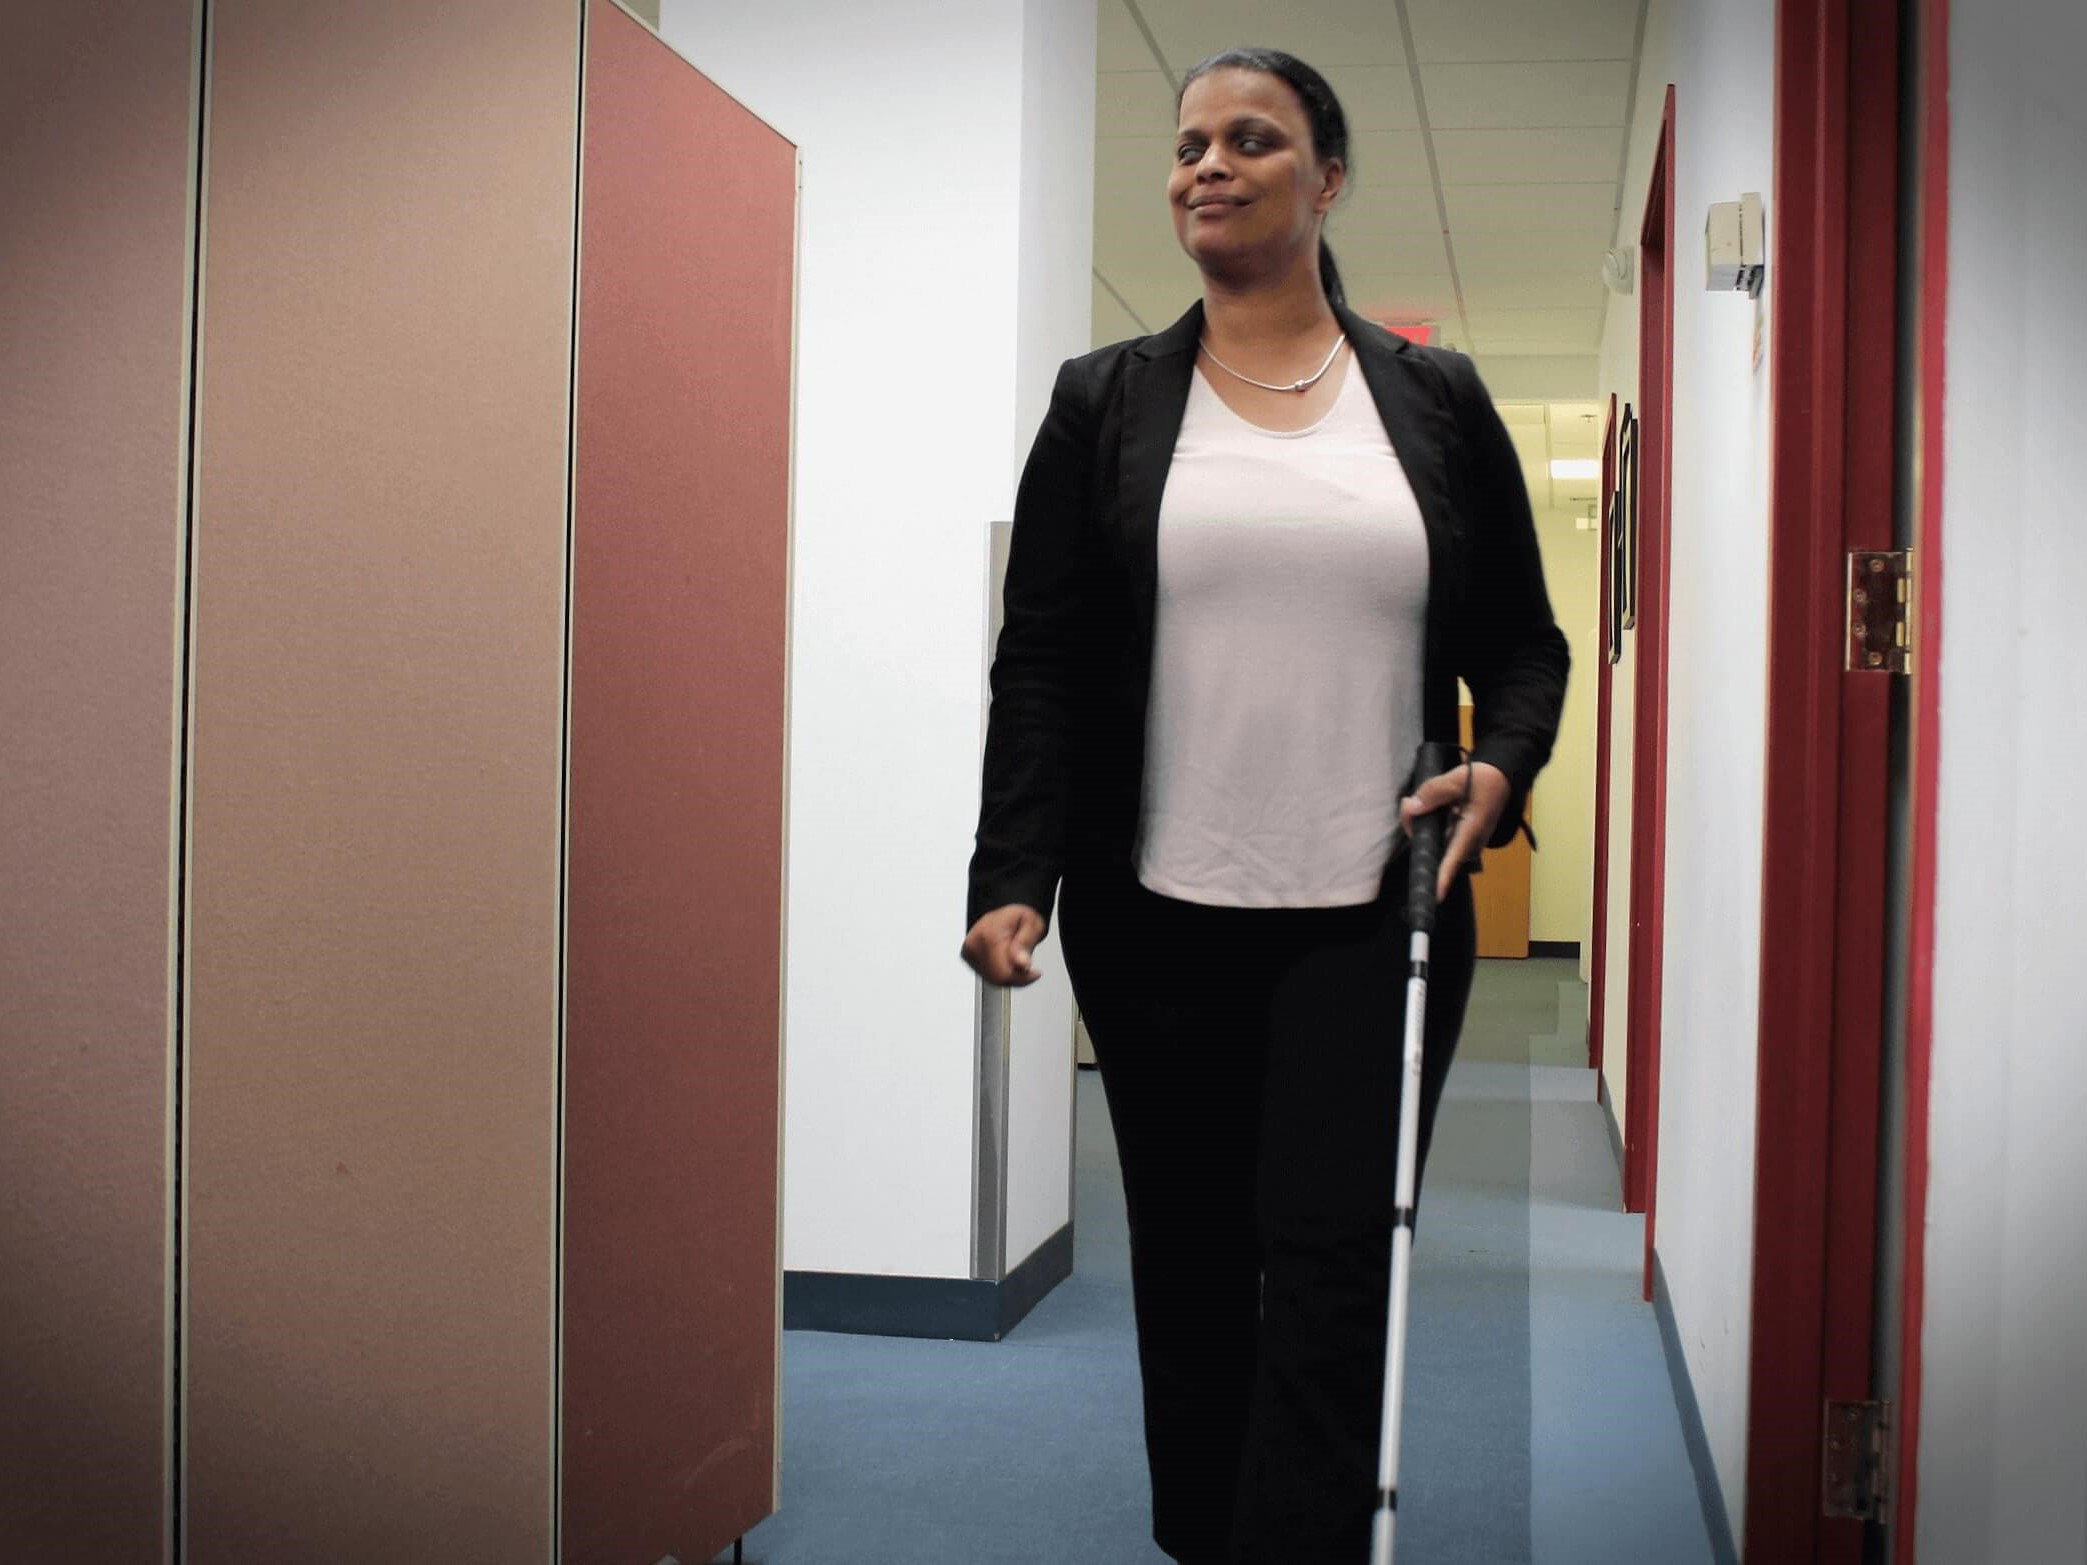 Daniela Depina, a 2019 Carroll Society Award inductee, walks down a hallway to her office at Boston Council for Independent Living.